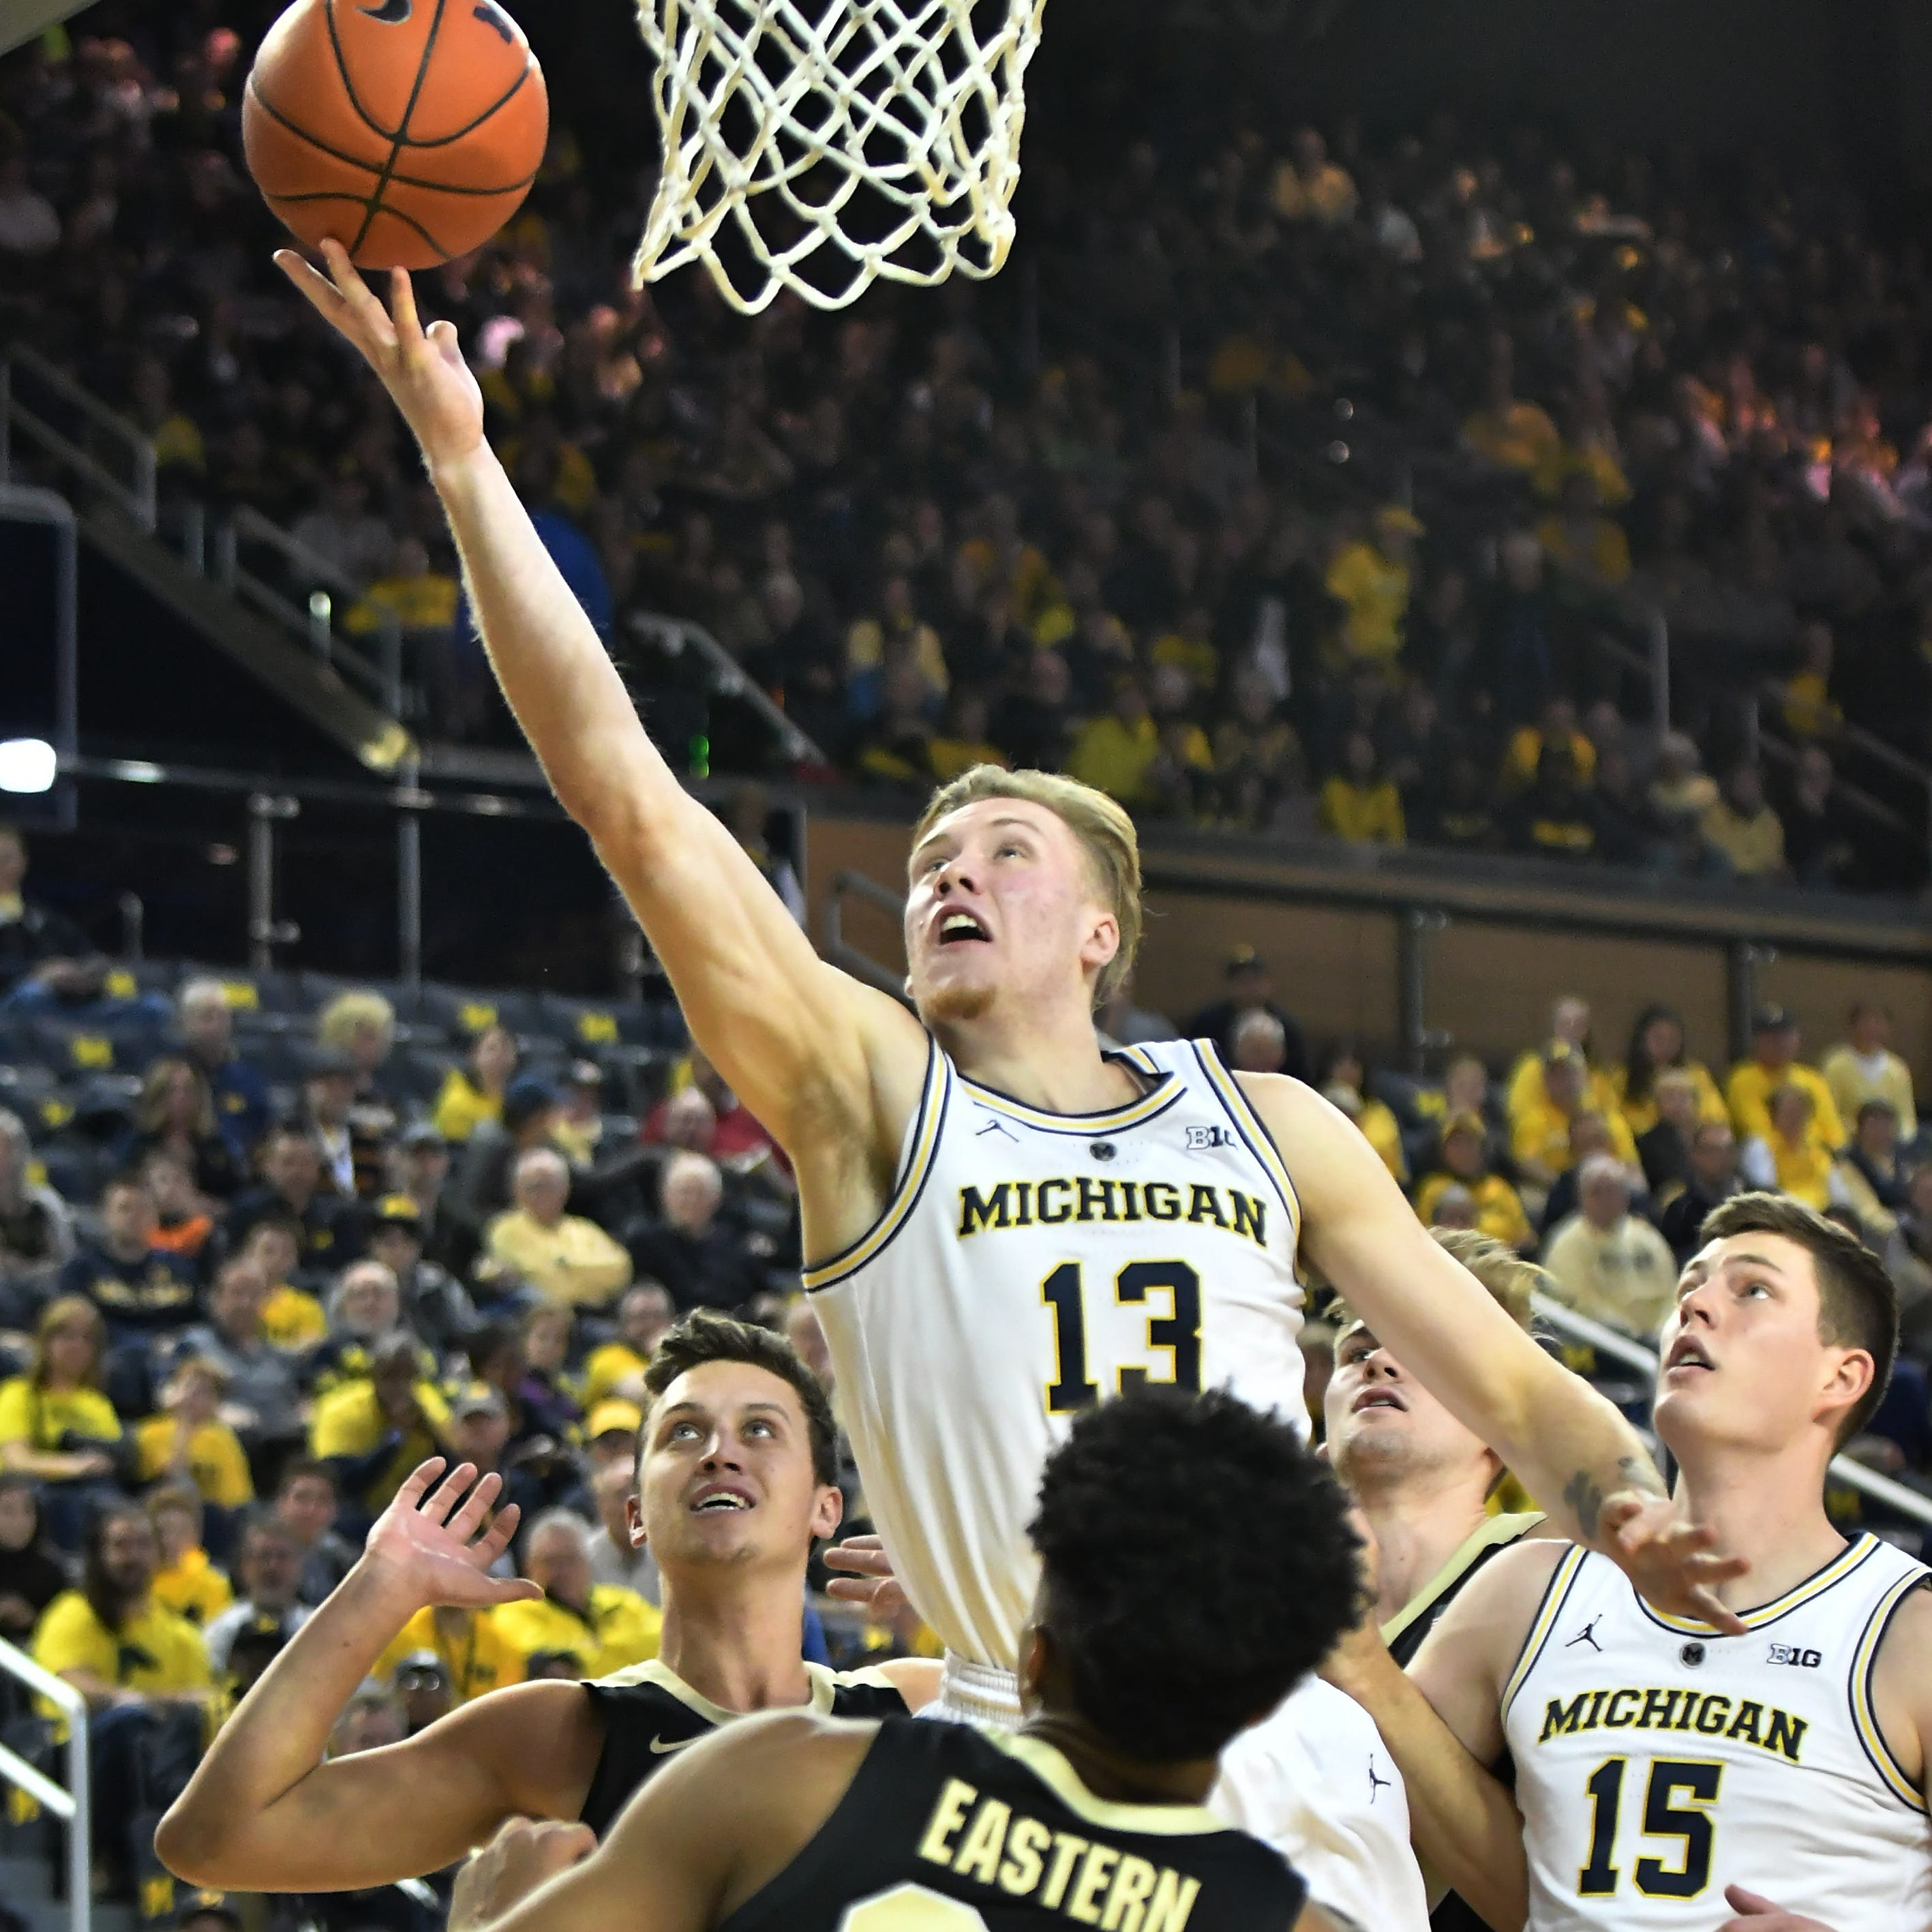 Unbeaten Michigan rises to No. 1 in NCAA's NET rankings